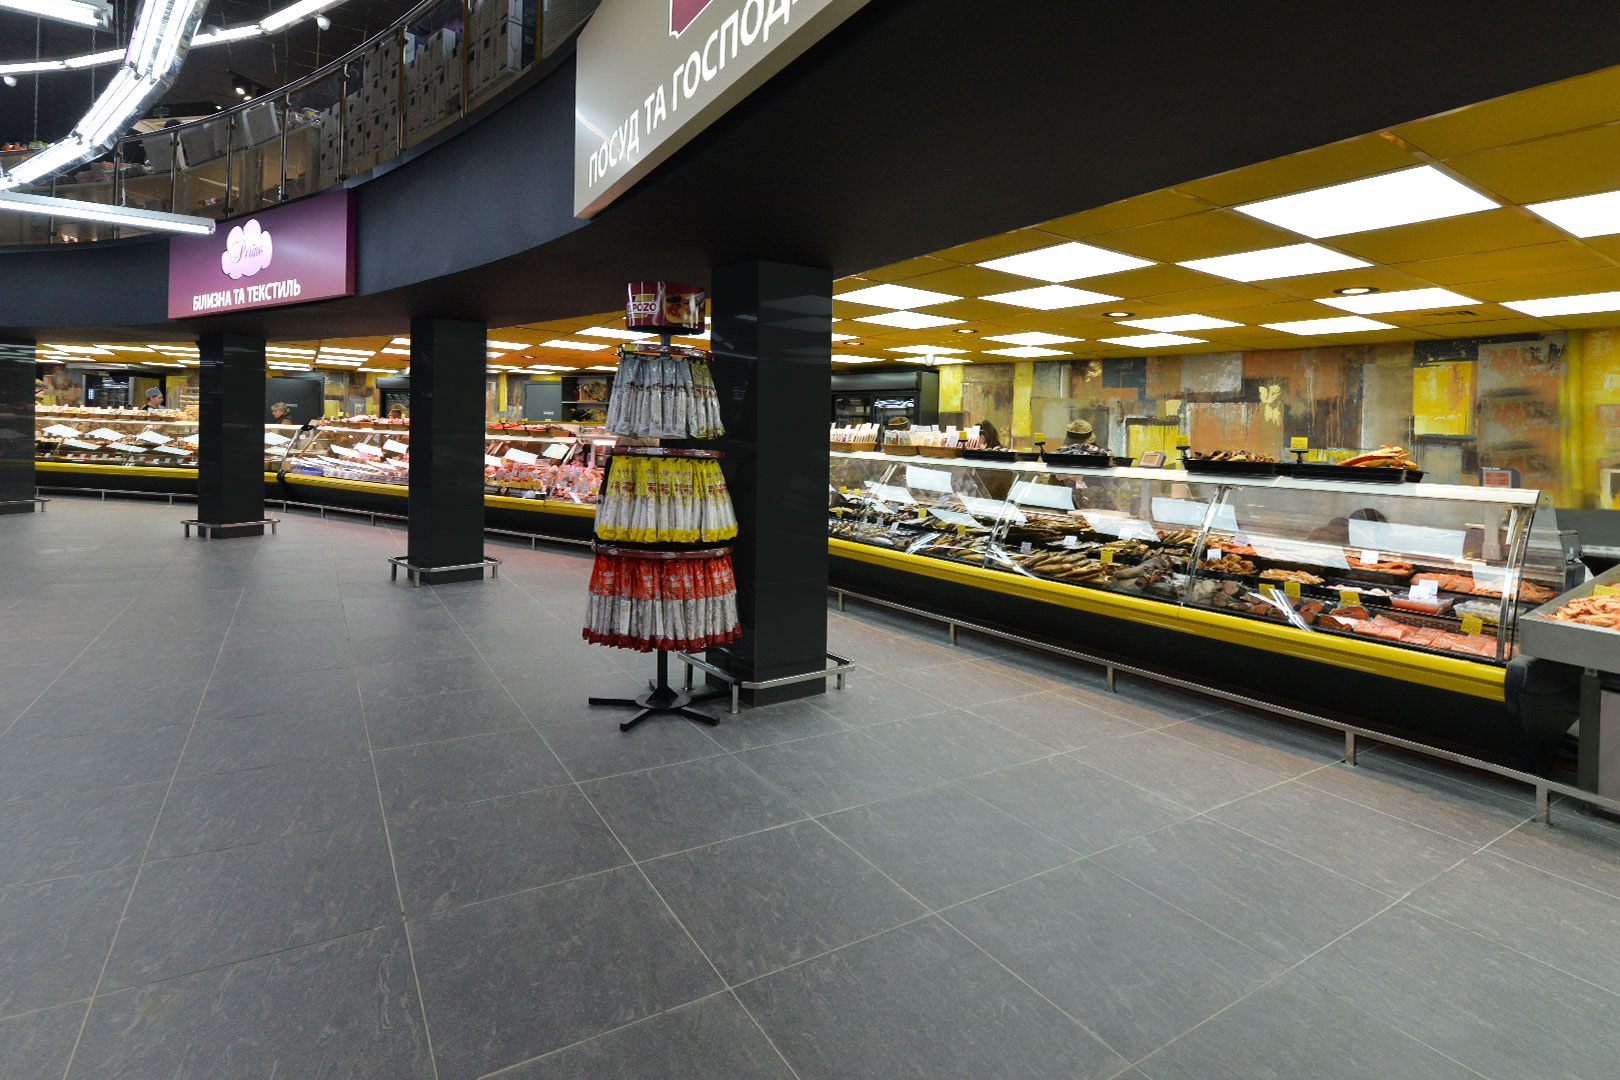 """Symphony MG 120 deli PS 125-DBM counters in """"Rost"""" supermarket"""